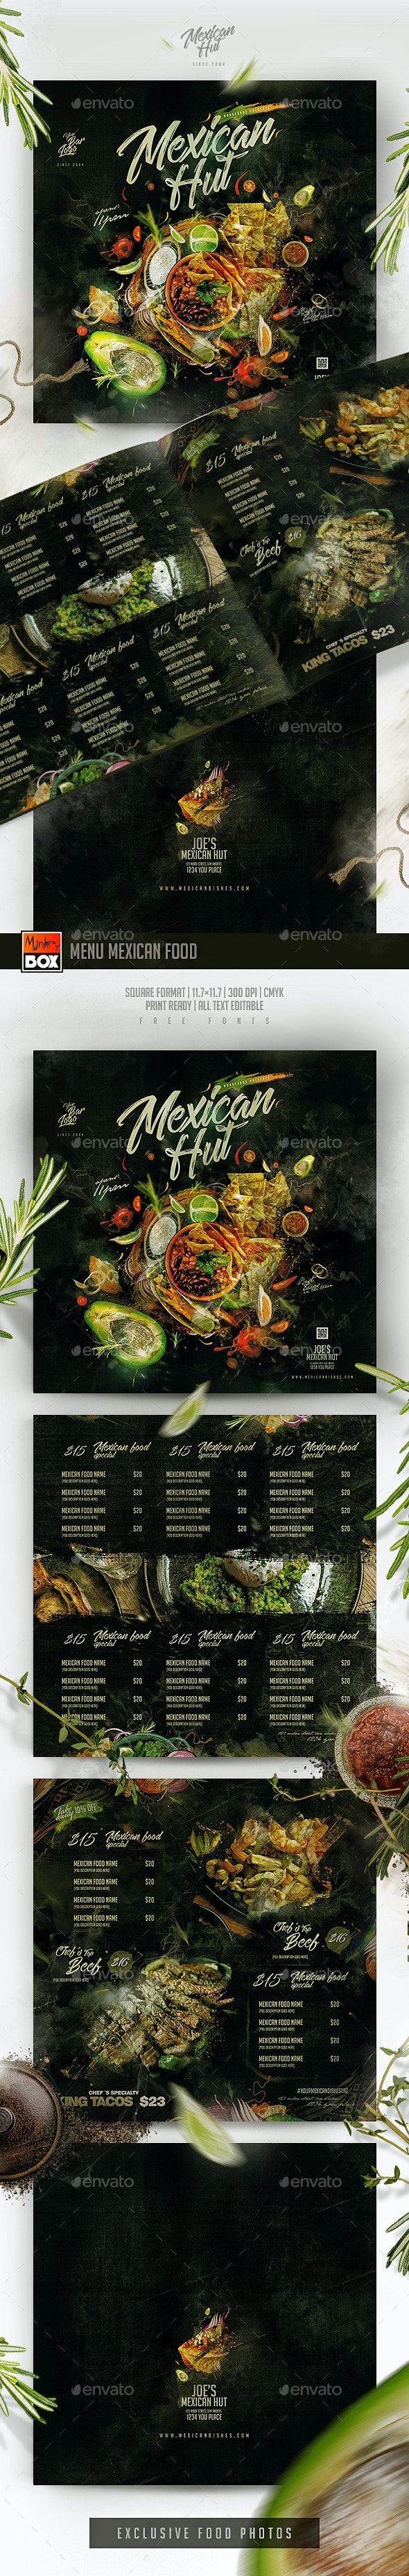 Menu Mexican Food - Food Menus Print Templates